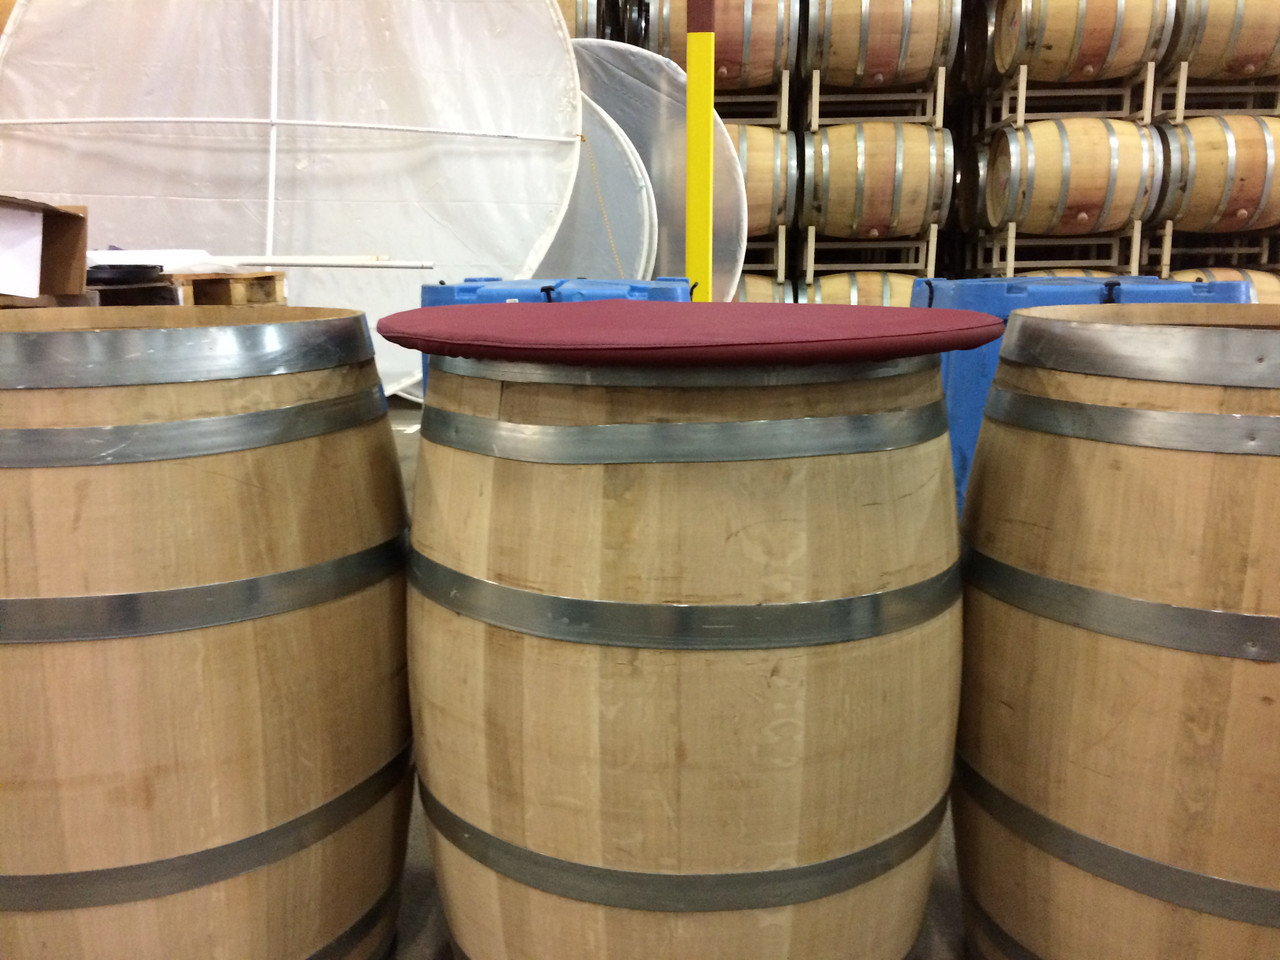 The Barrel Cover by SLO Sail and Canvas keeps dirt and debris out, while allowing gasses to escape.